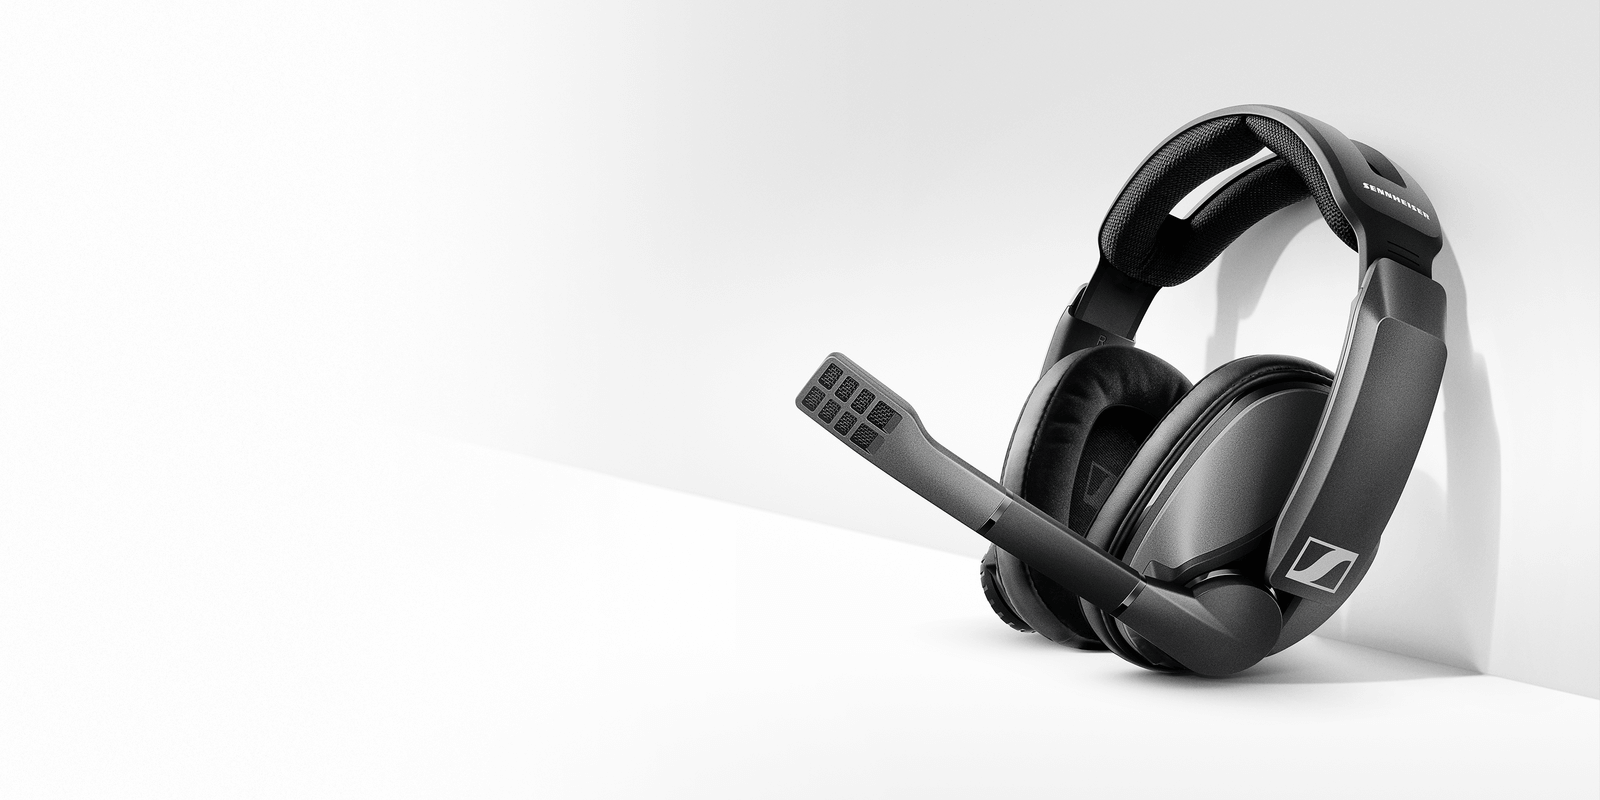 Sennheiser's newest gaming headset boasts 100 hours of battery life